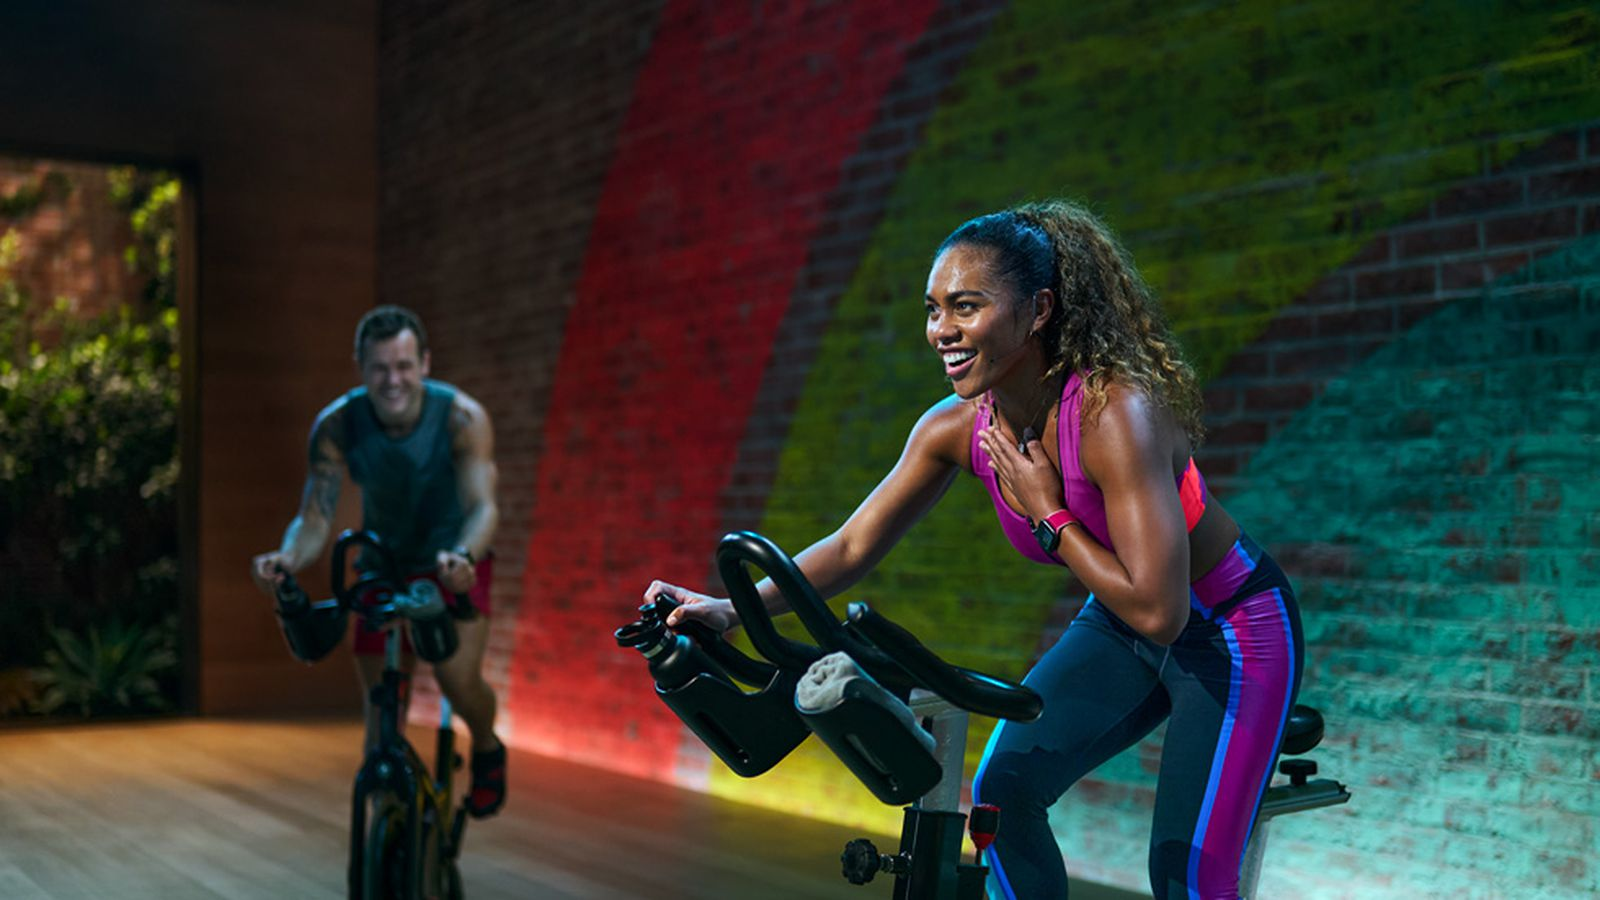 UnitedHealthcare Offering Insured Members Free Year of Apple Fitness+